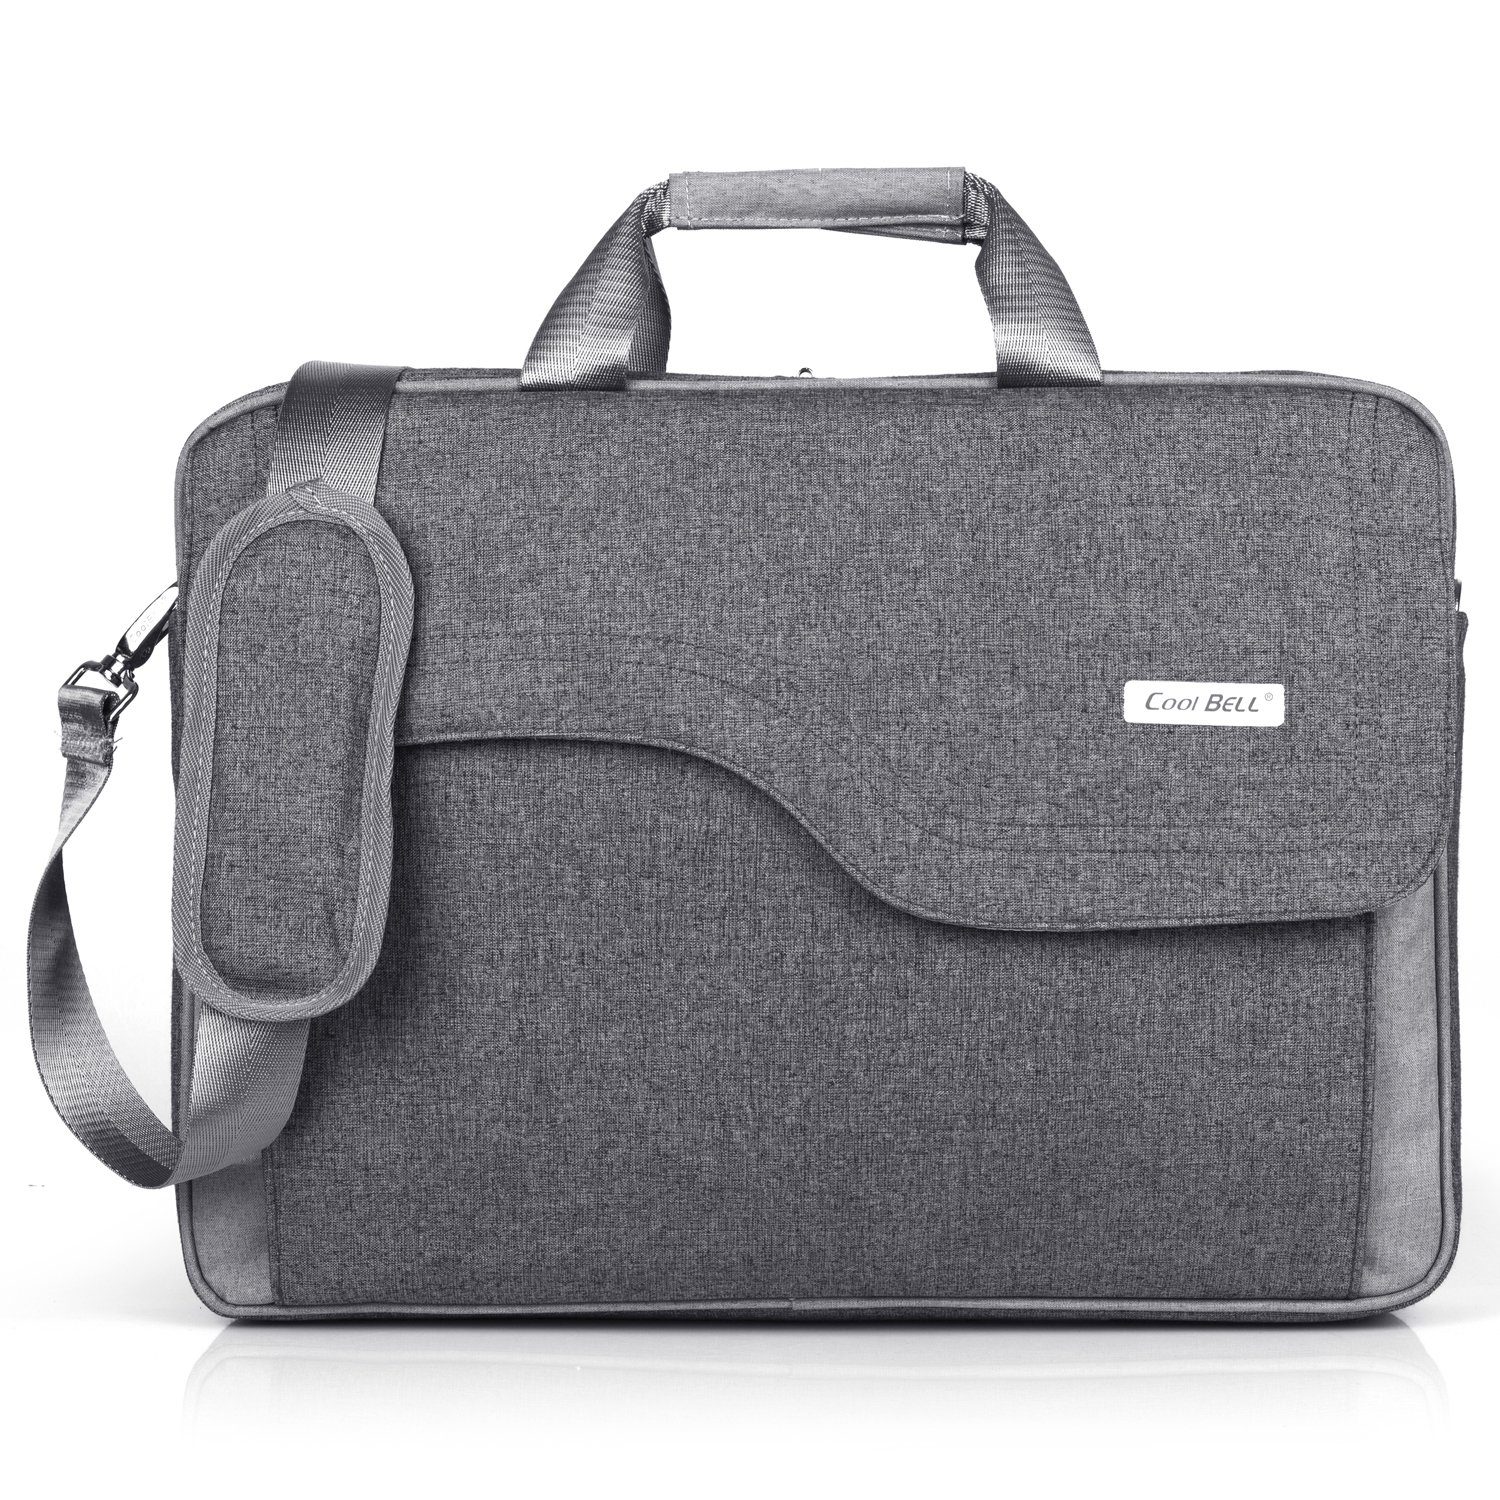 b775eaa213 Amazon.com  CoolBELL 15.6 Inch Laptop Bag Nylon Shoulder Bag Messenger Hand  Bag Briefcase for Men Women (Grey)  Computers   Accessories